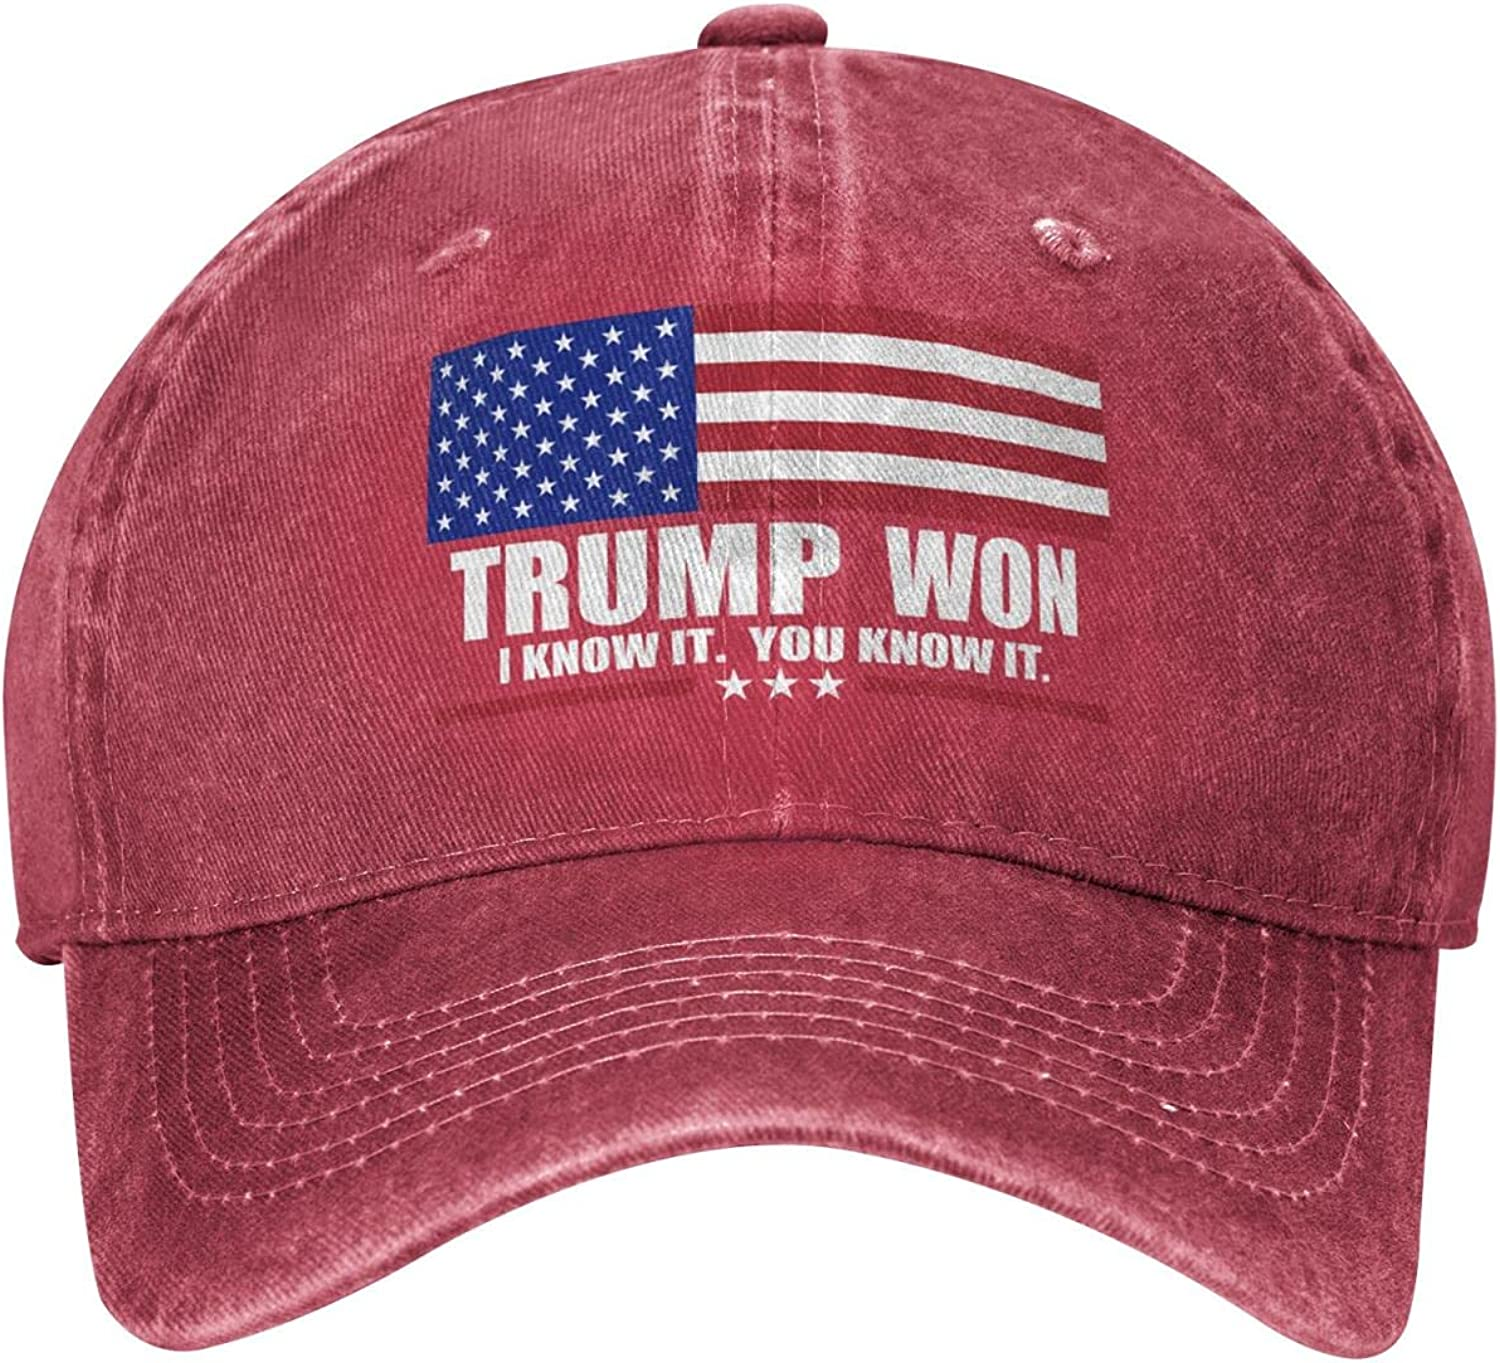 Trump Won I Know It. You Know It. Hat,Save America with American Flag Donald Trump MAGA Adjustable Baseball Cap